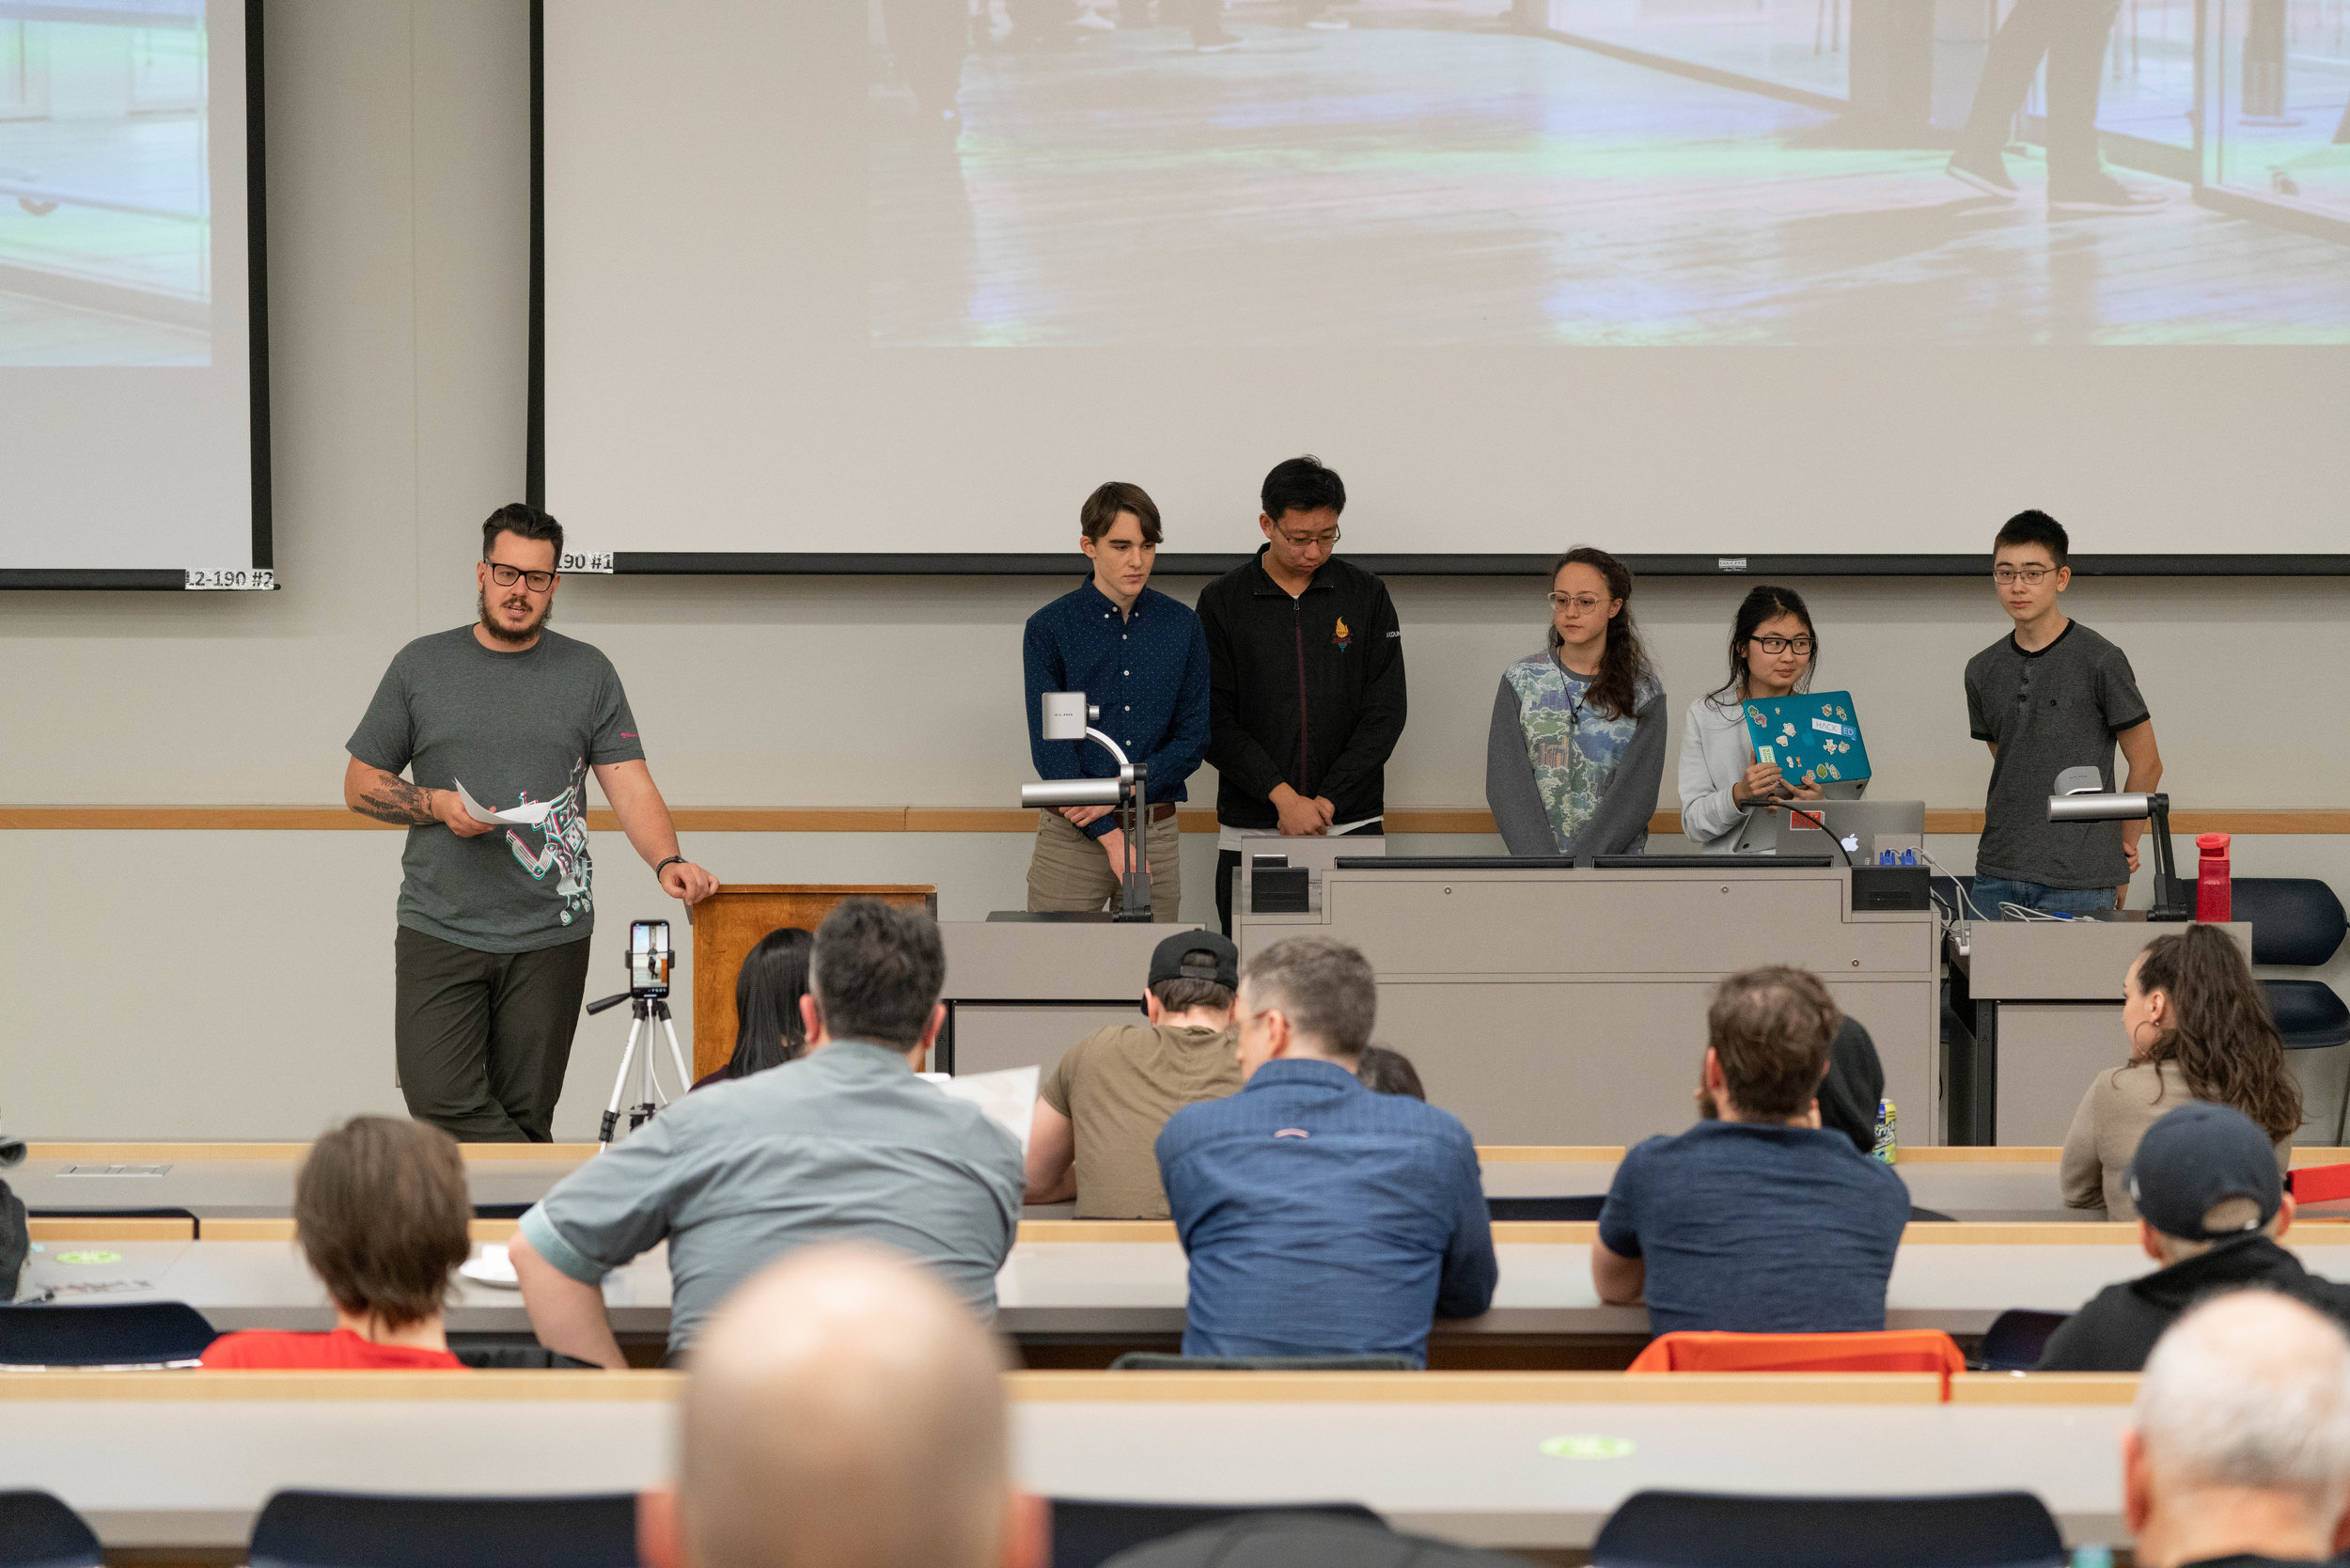 DemoCamp 43 featured teams from the Fall HackED Beta Hackathon!